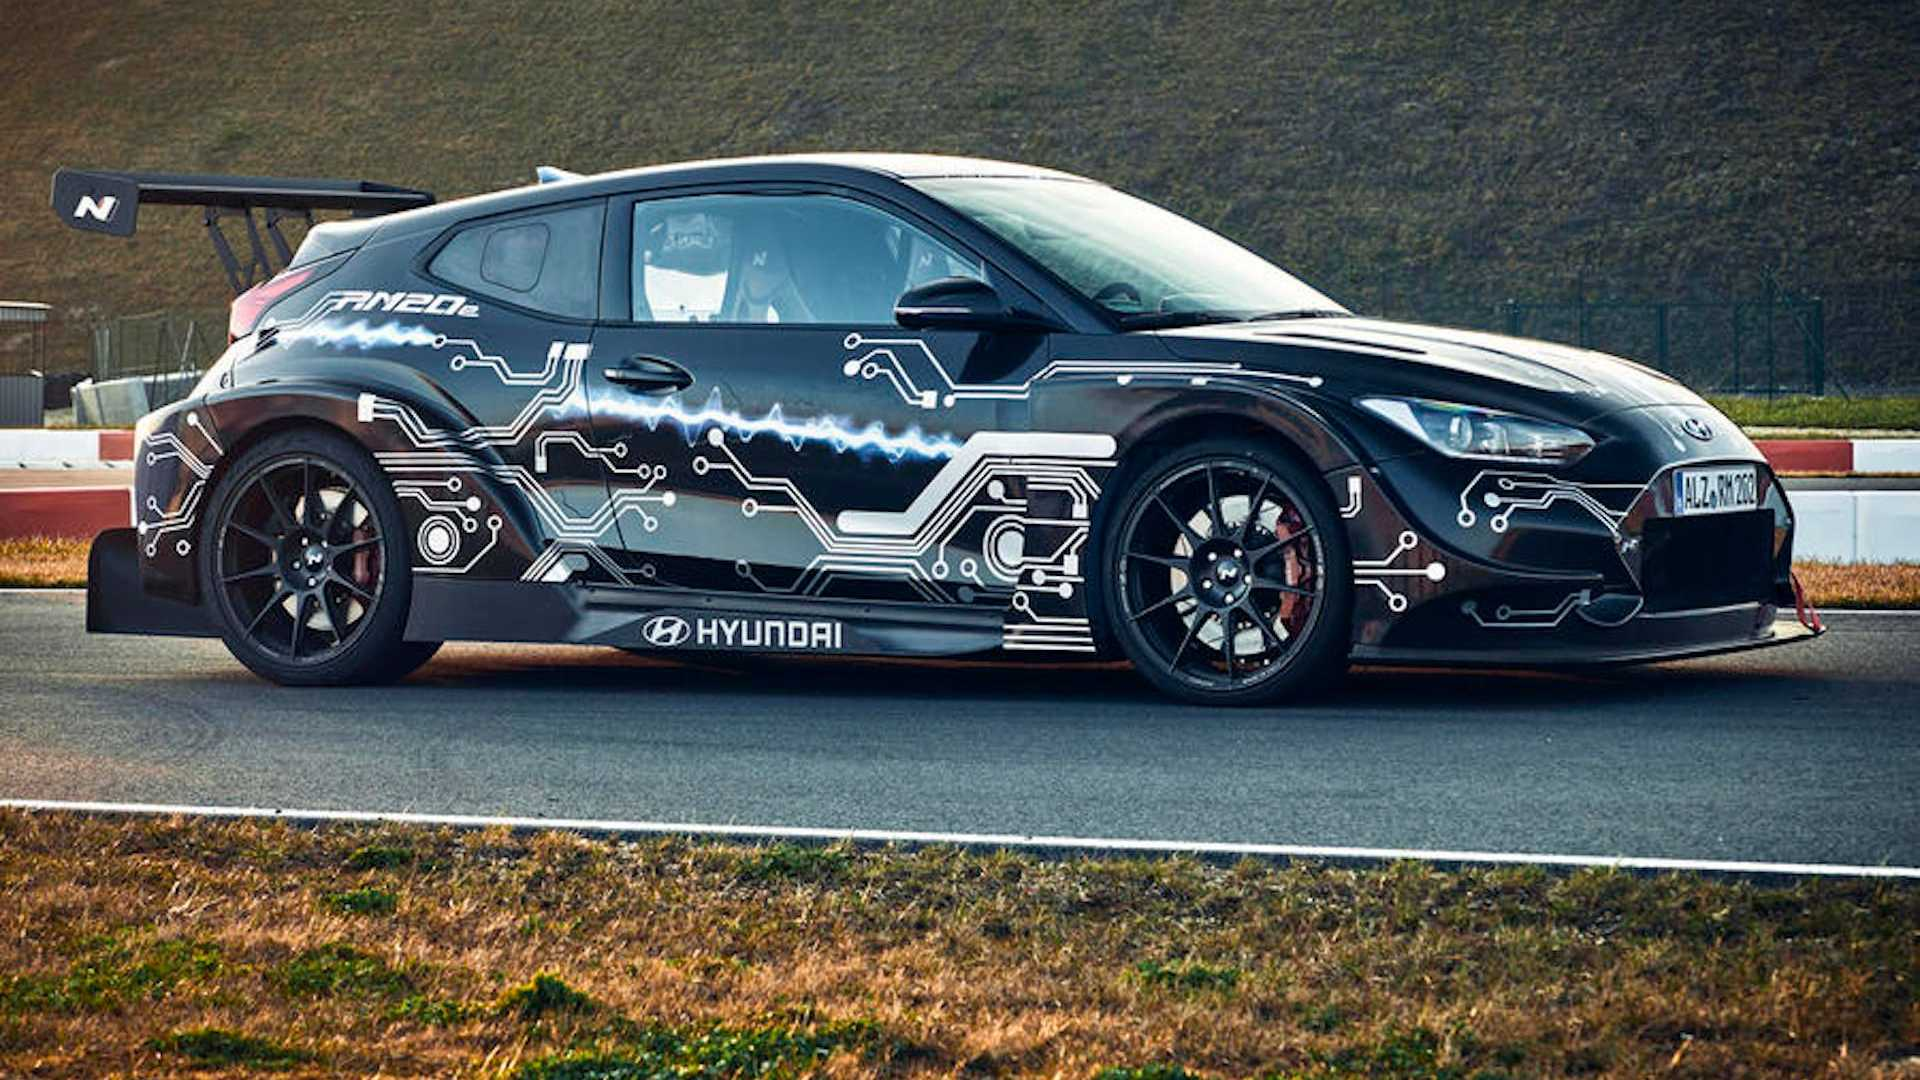 [Image: hyundai-rm20e-revealed-as-electric-hot-h...epower.jpg]